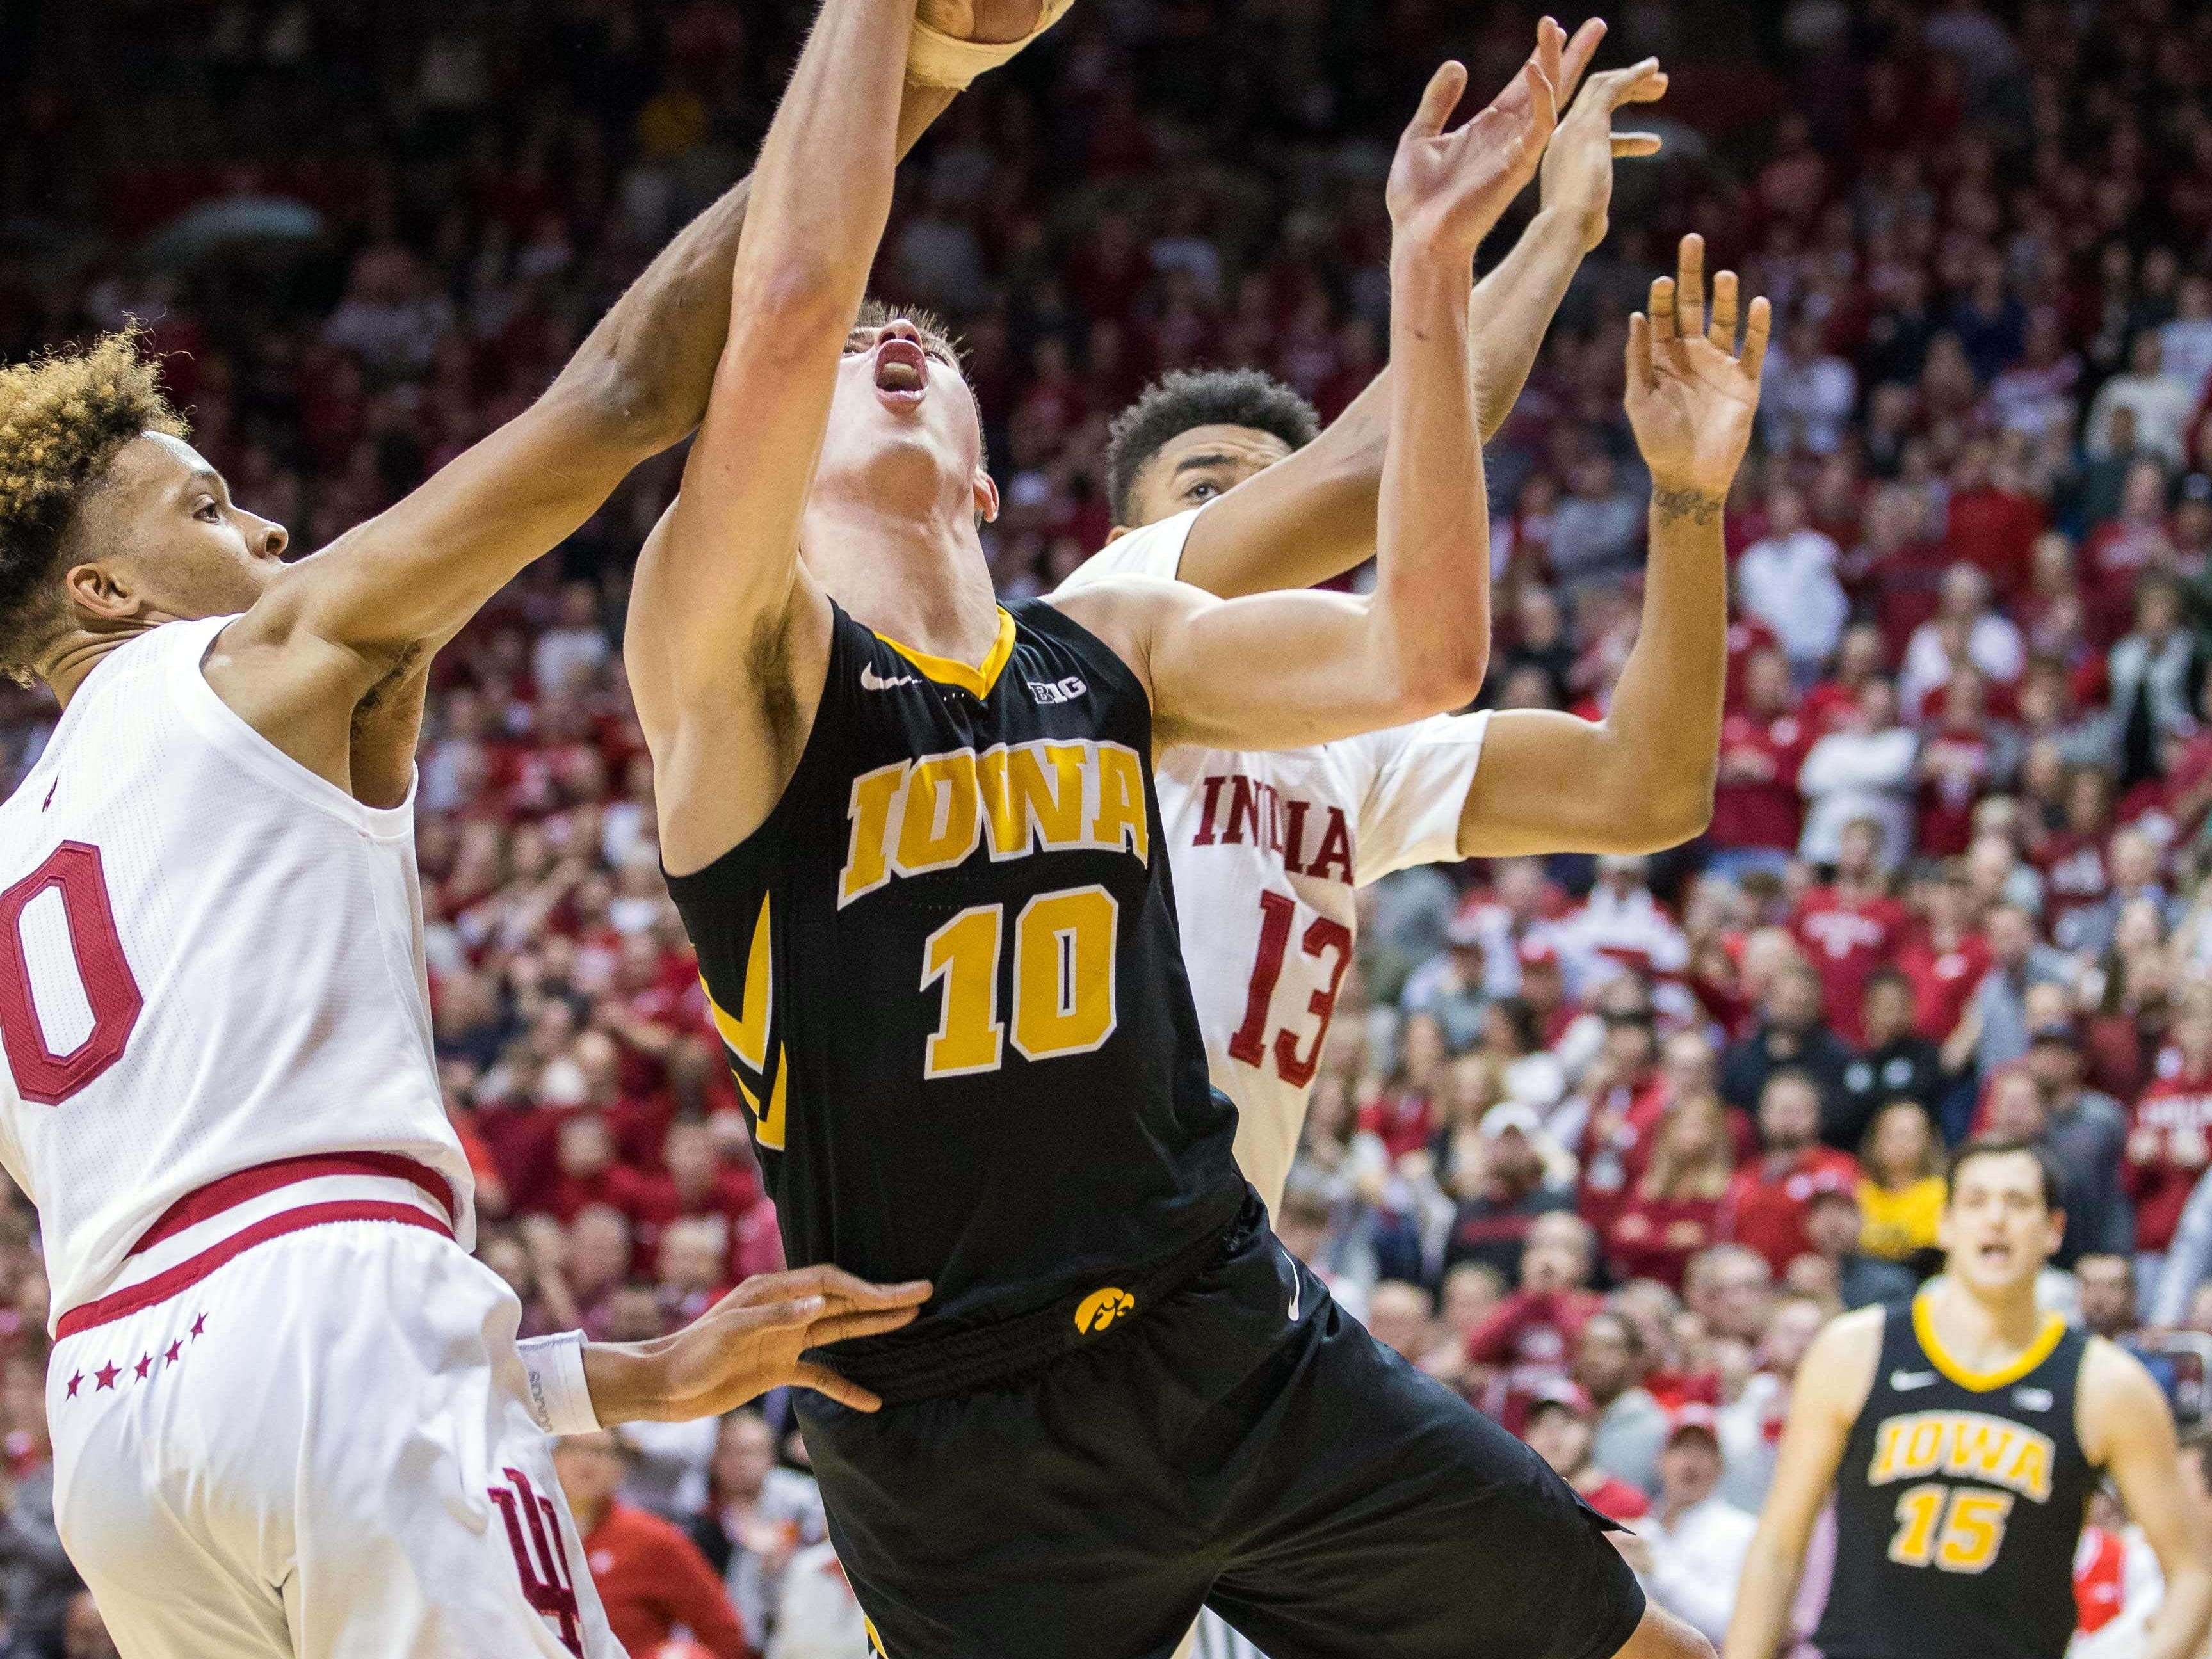 Indiana Hoosiers guard Romeo Langford (0) fouls Iowa Hawkeyes guard Joe Wieskamp (10) in the second half at Assembly Hall. Mandatory Credit: Trevor Ruszkowski-USA TODAY Sports